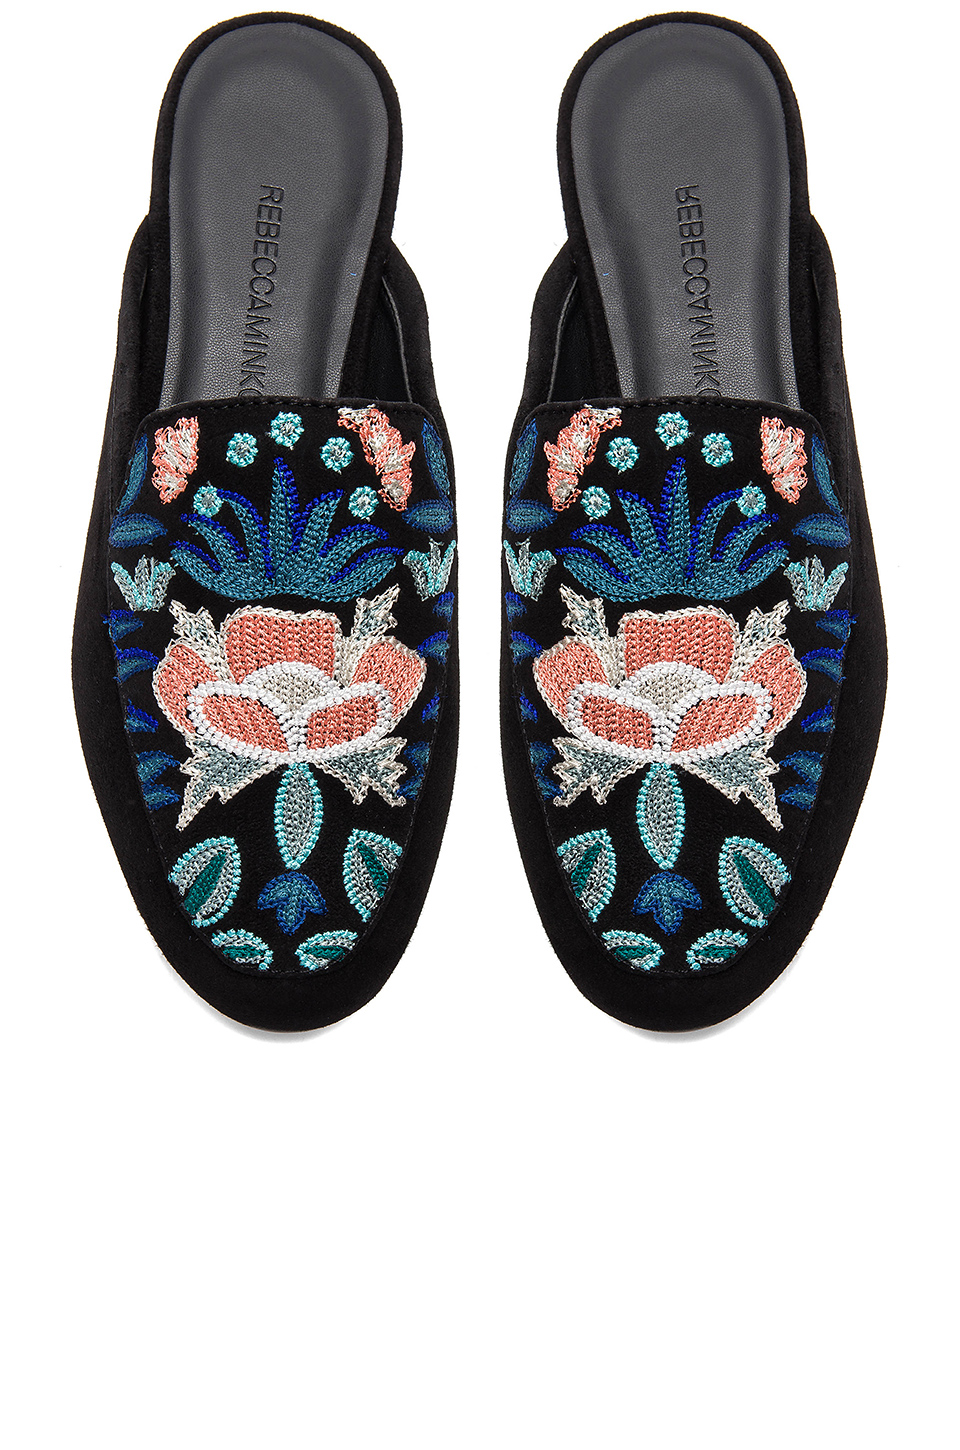 Rebecca Minkoff Raylee Slide in Floral Embroidery & Black Suede